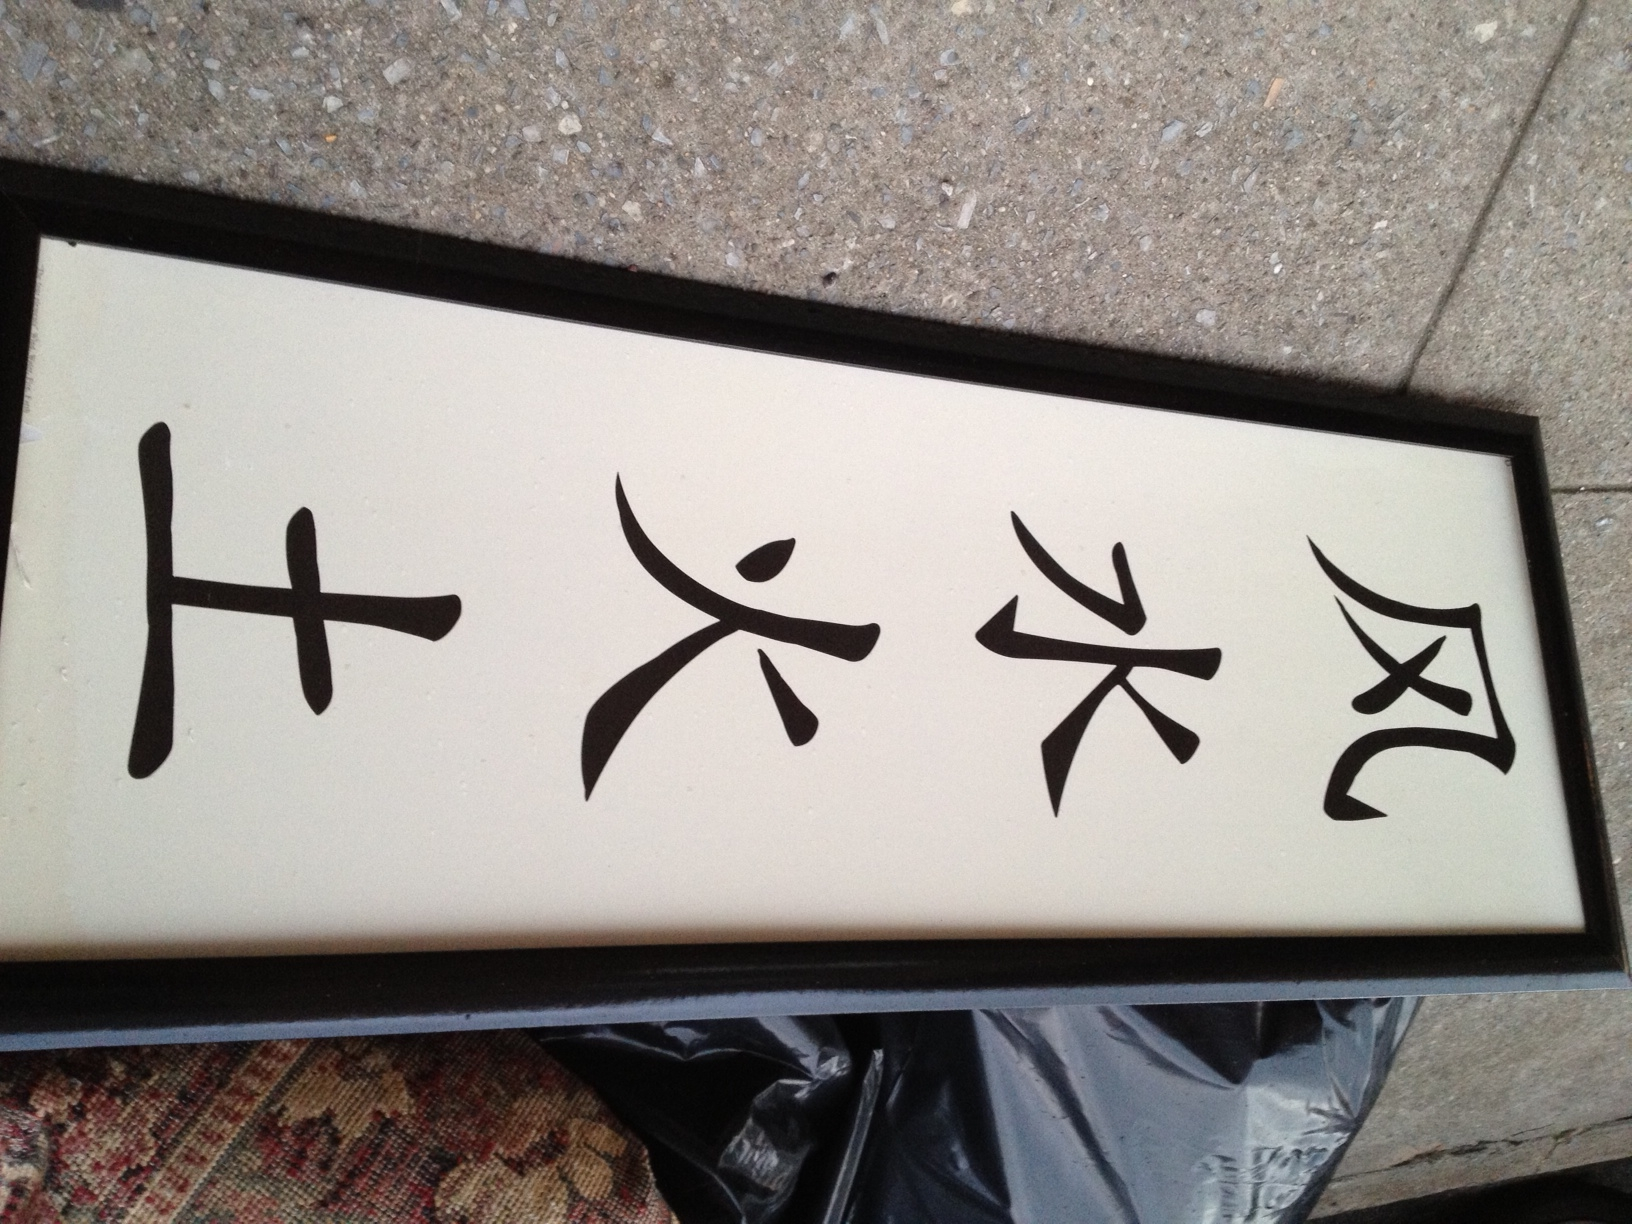 Earth symbol chinese image collections symbol and sign ideas chinese symbol for wind gallery symbol and sign ideas wind element symbol chinese images free download buycottarizona